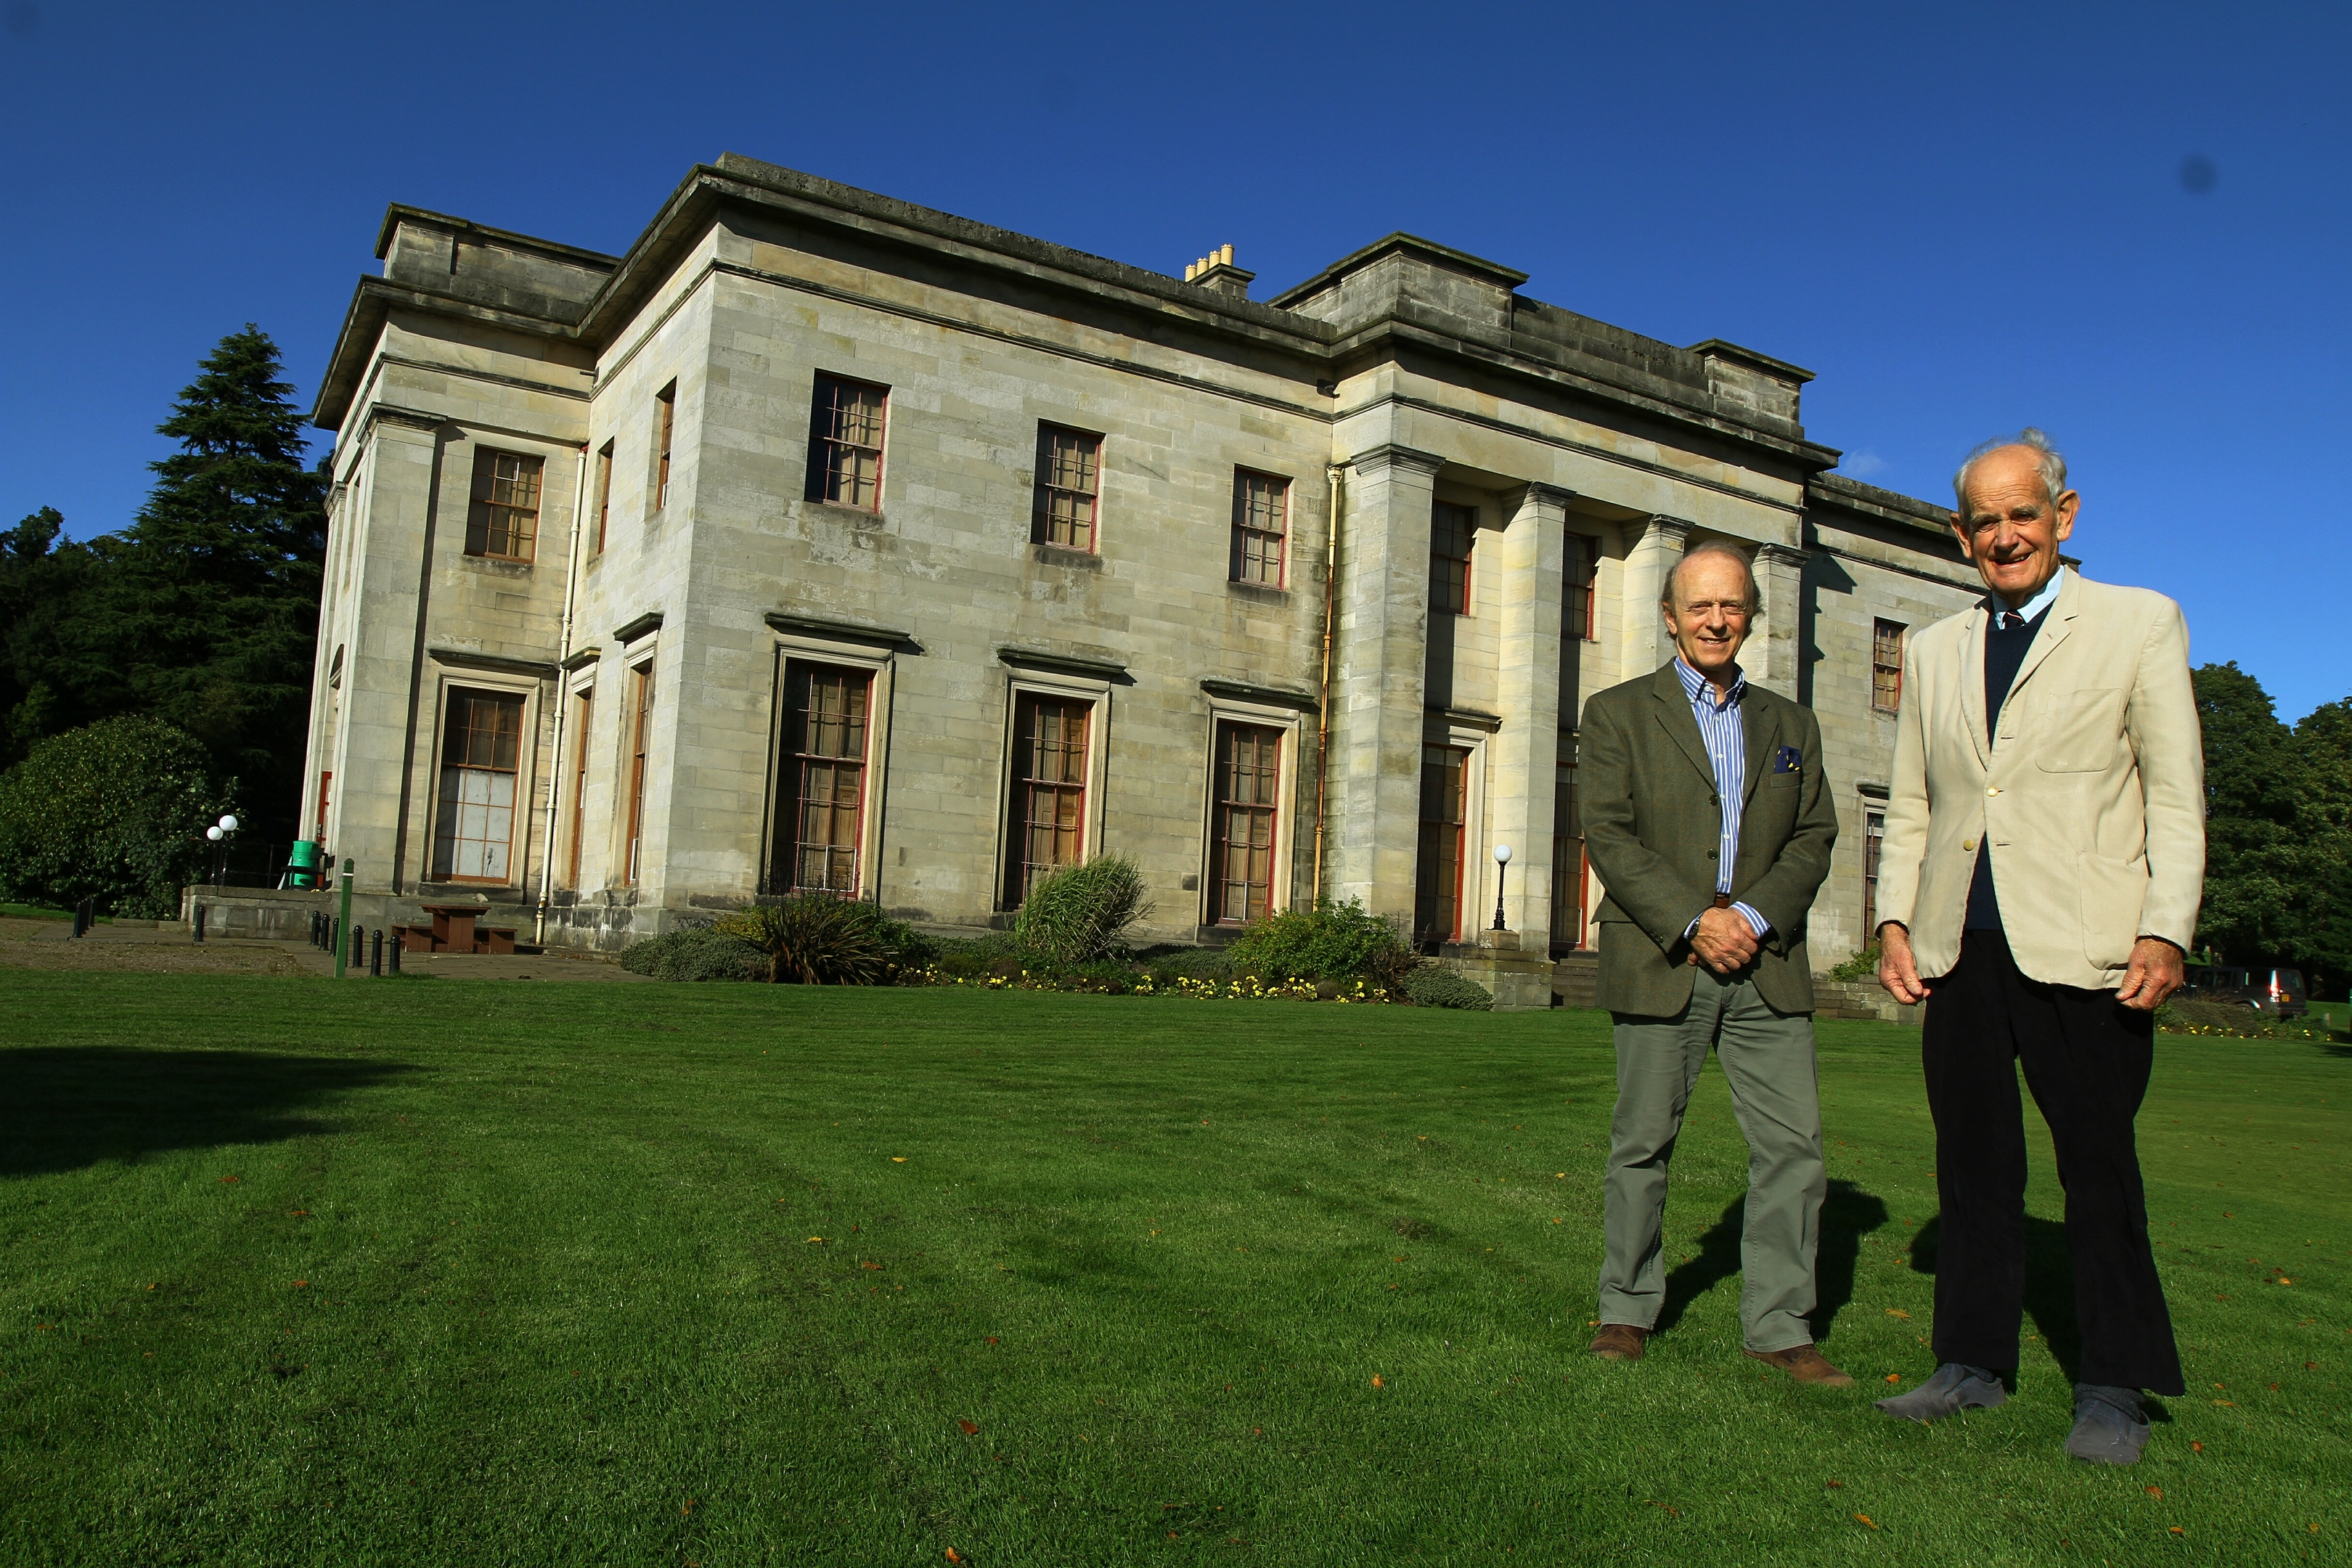 Captain James Crawford, Chairman of the Friends Of Camperdown House, and John Picton - Committee Member at Camperdown House